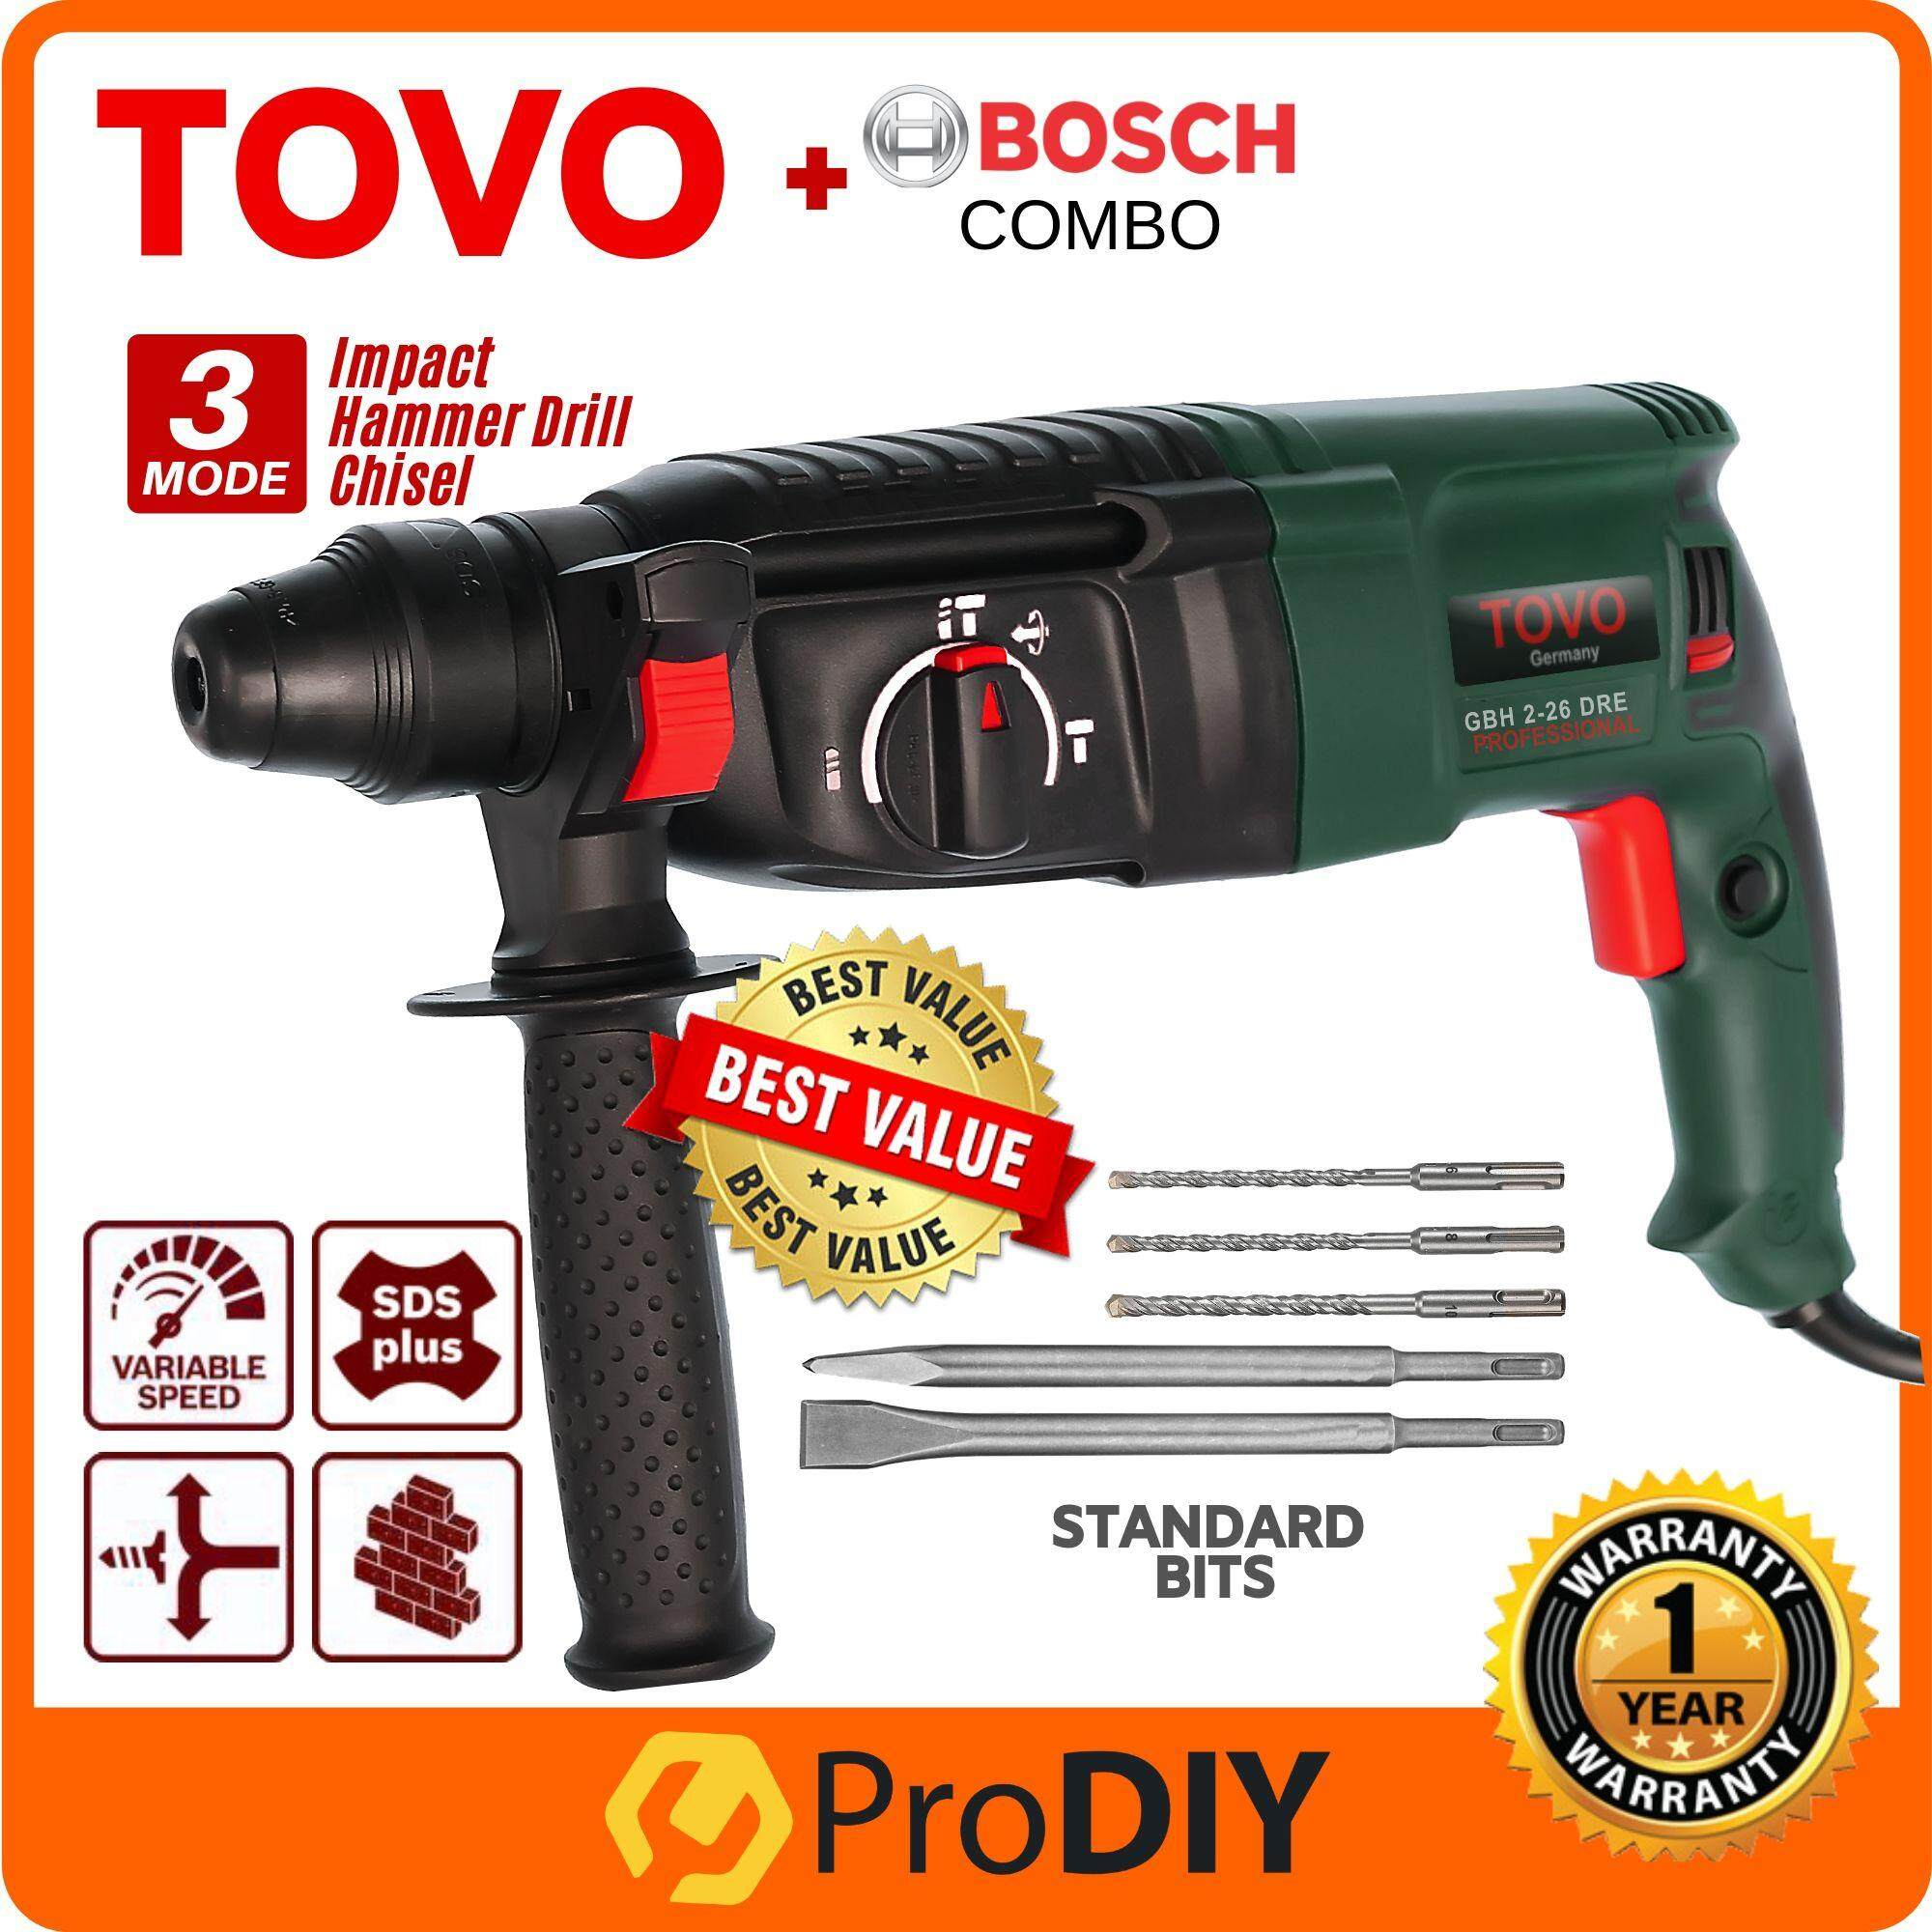 TOVO GBH 2-26 DRE Rotary Hammer Drill 800W 26mm With Handle Add On Bosch  Concrete Bits